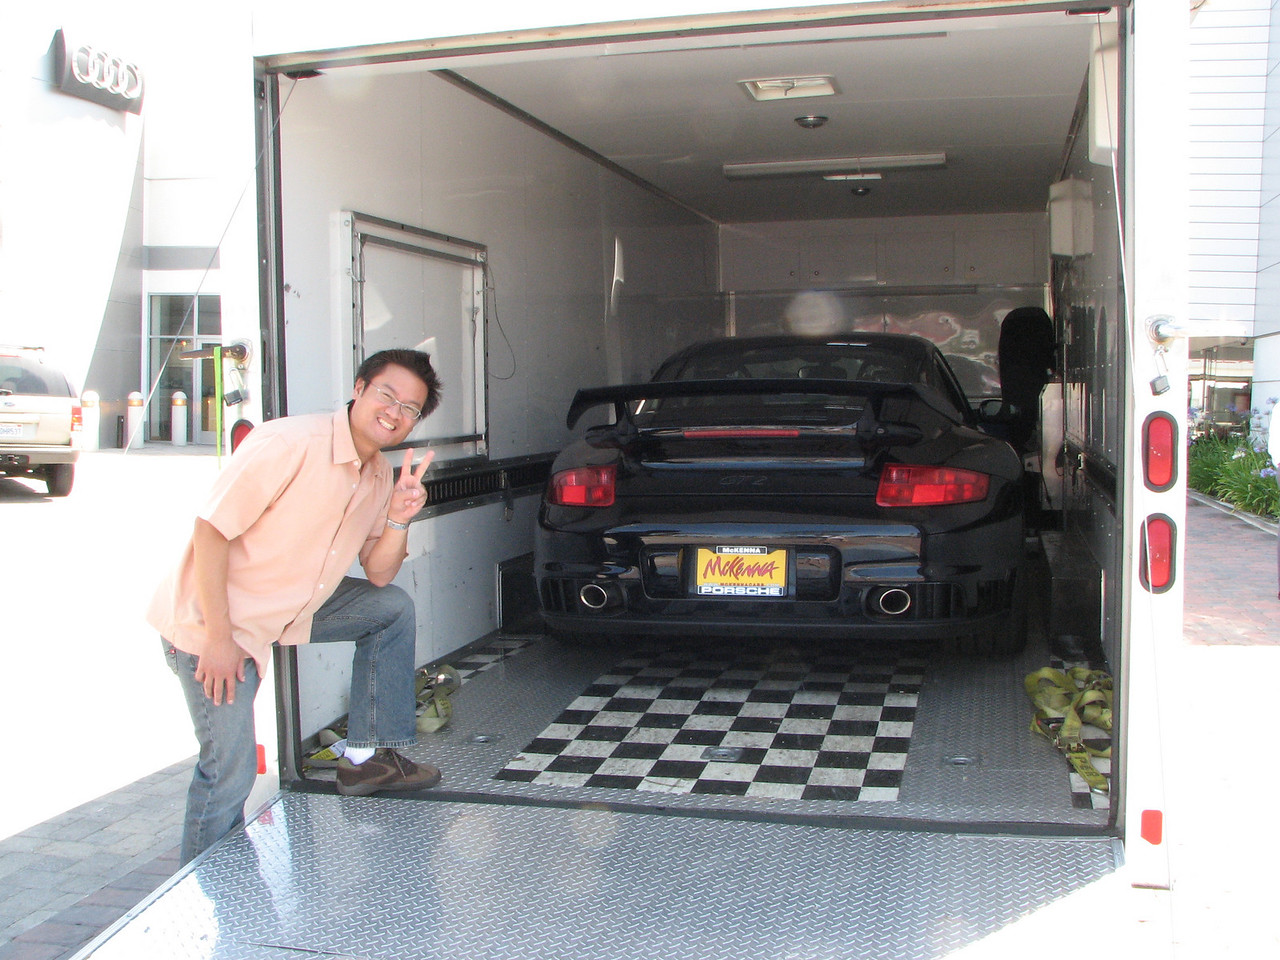 2008 05 28 Wed - Fobby Cliff Tao & Porsche 911 Carrera GT2